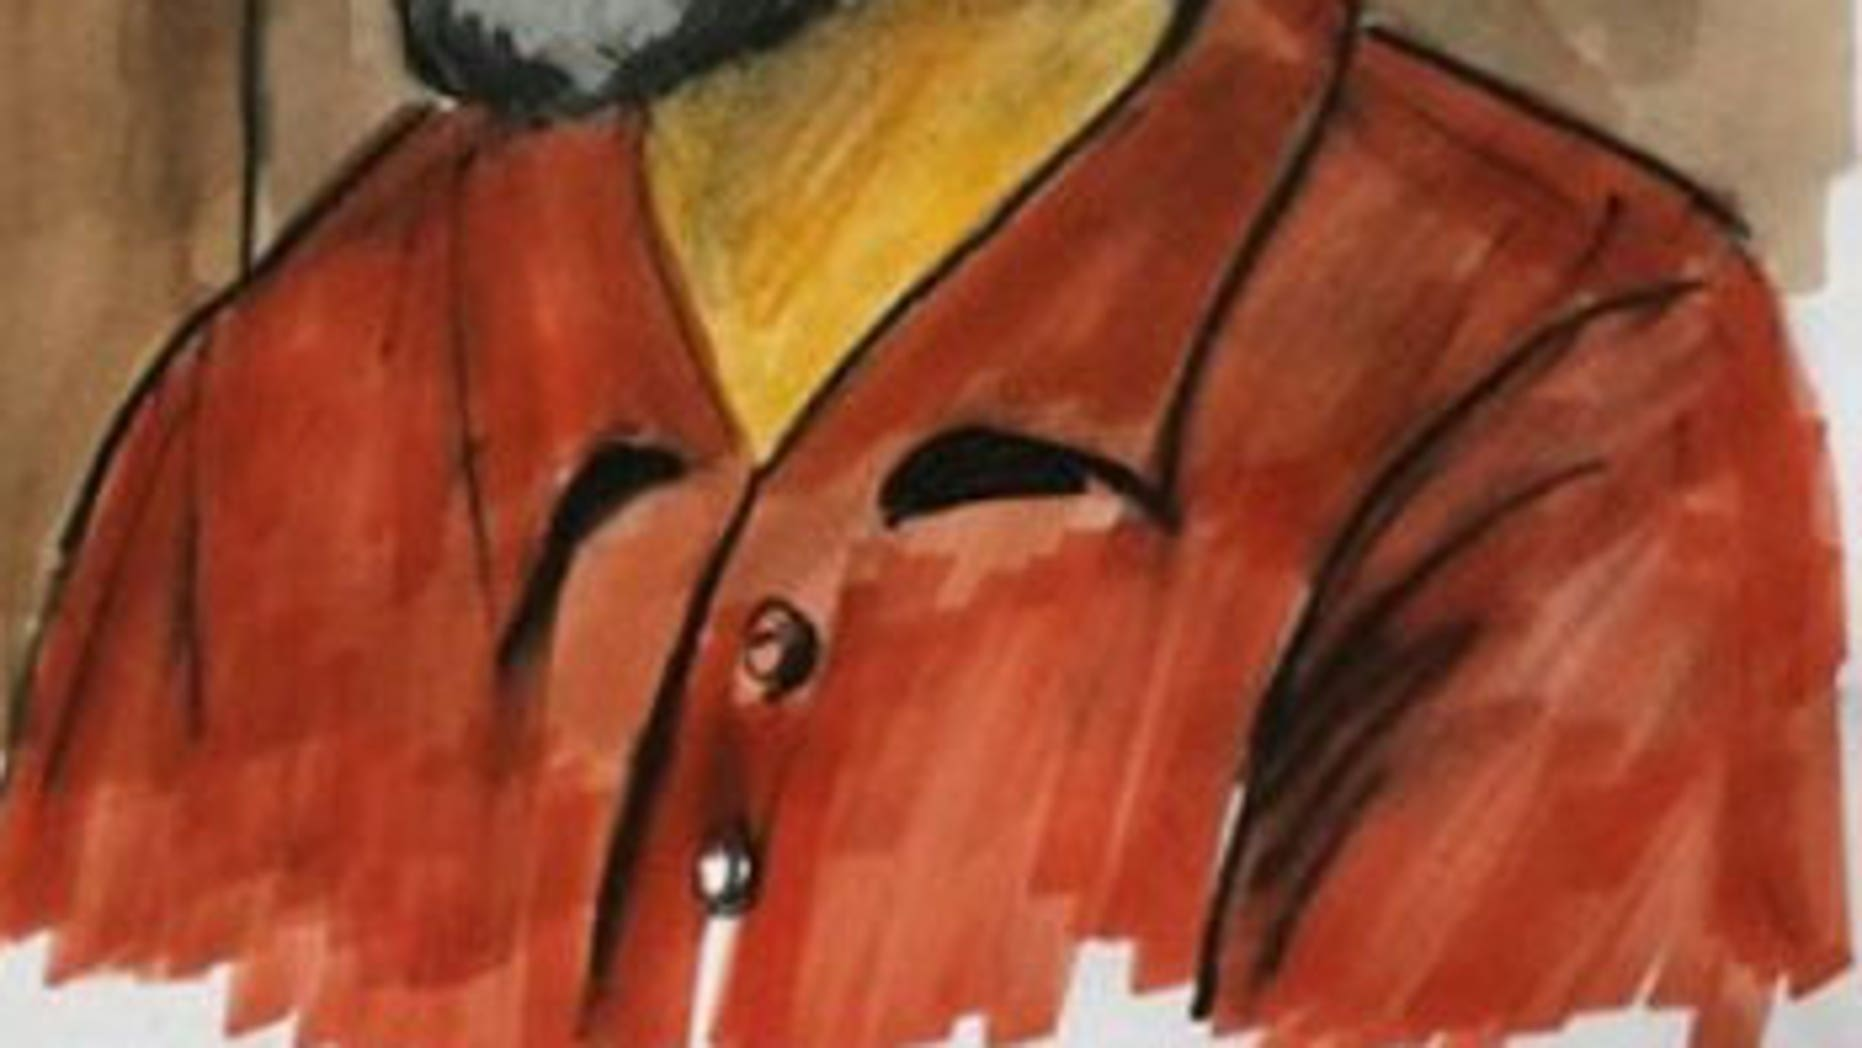 A courtroom sketch of Tahawwur Hussain Rana, charged with plotting a terrorist attack on a Danish newspaper.